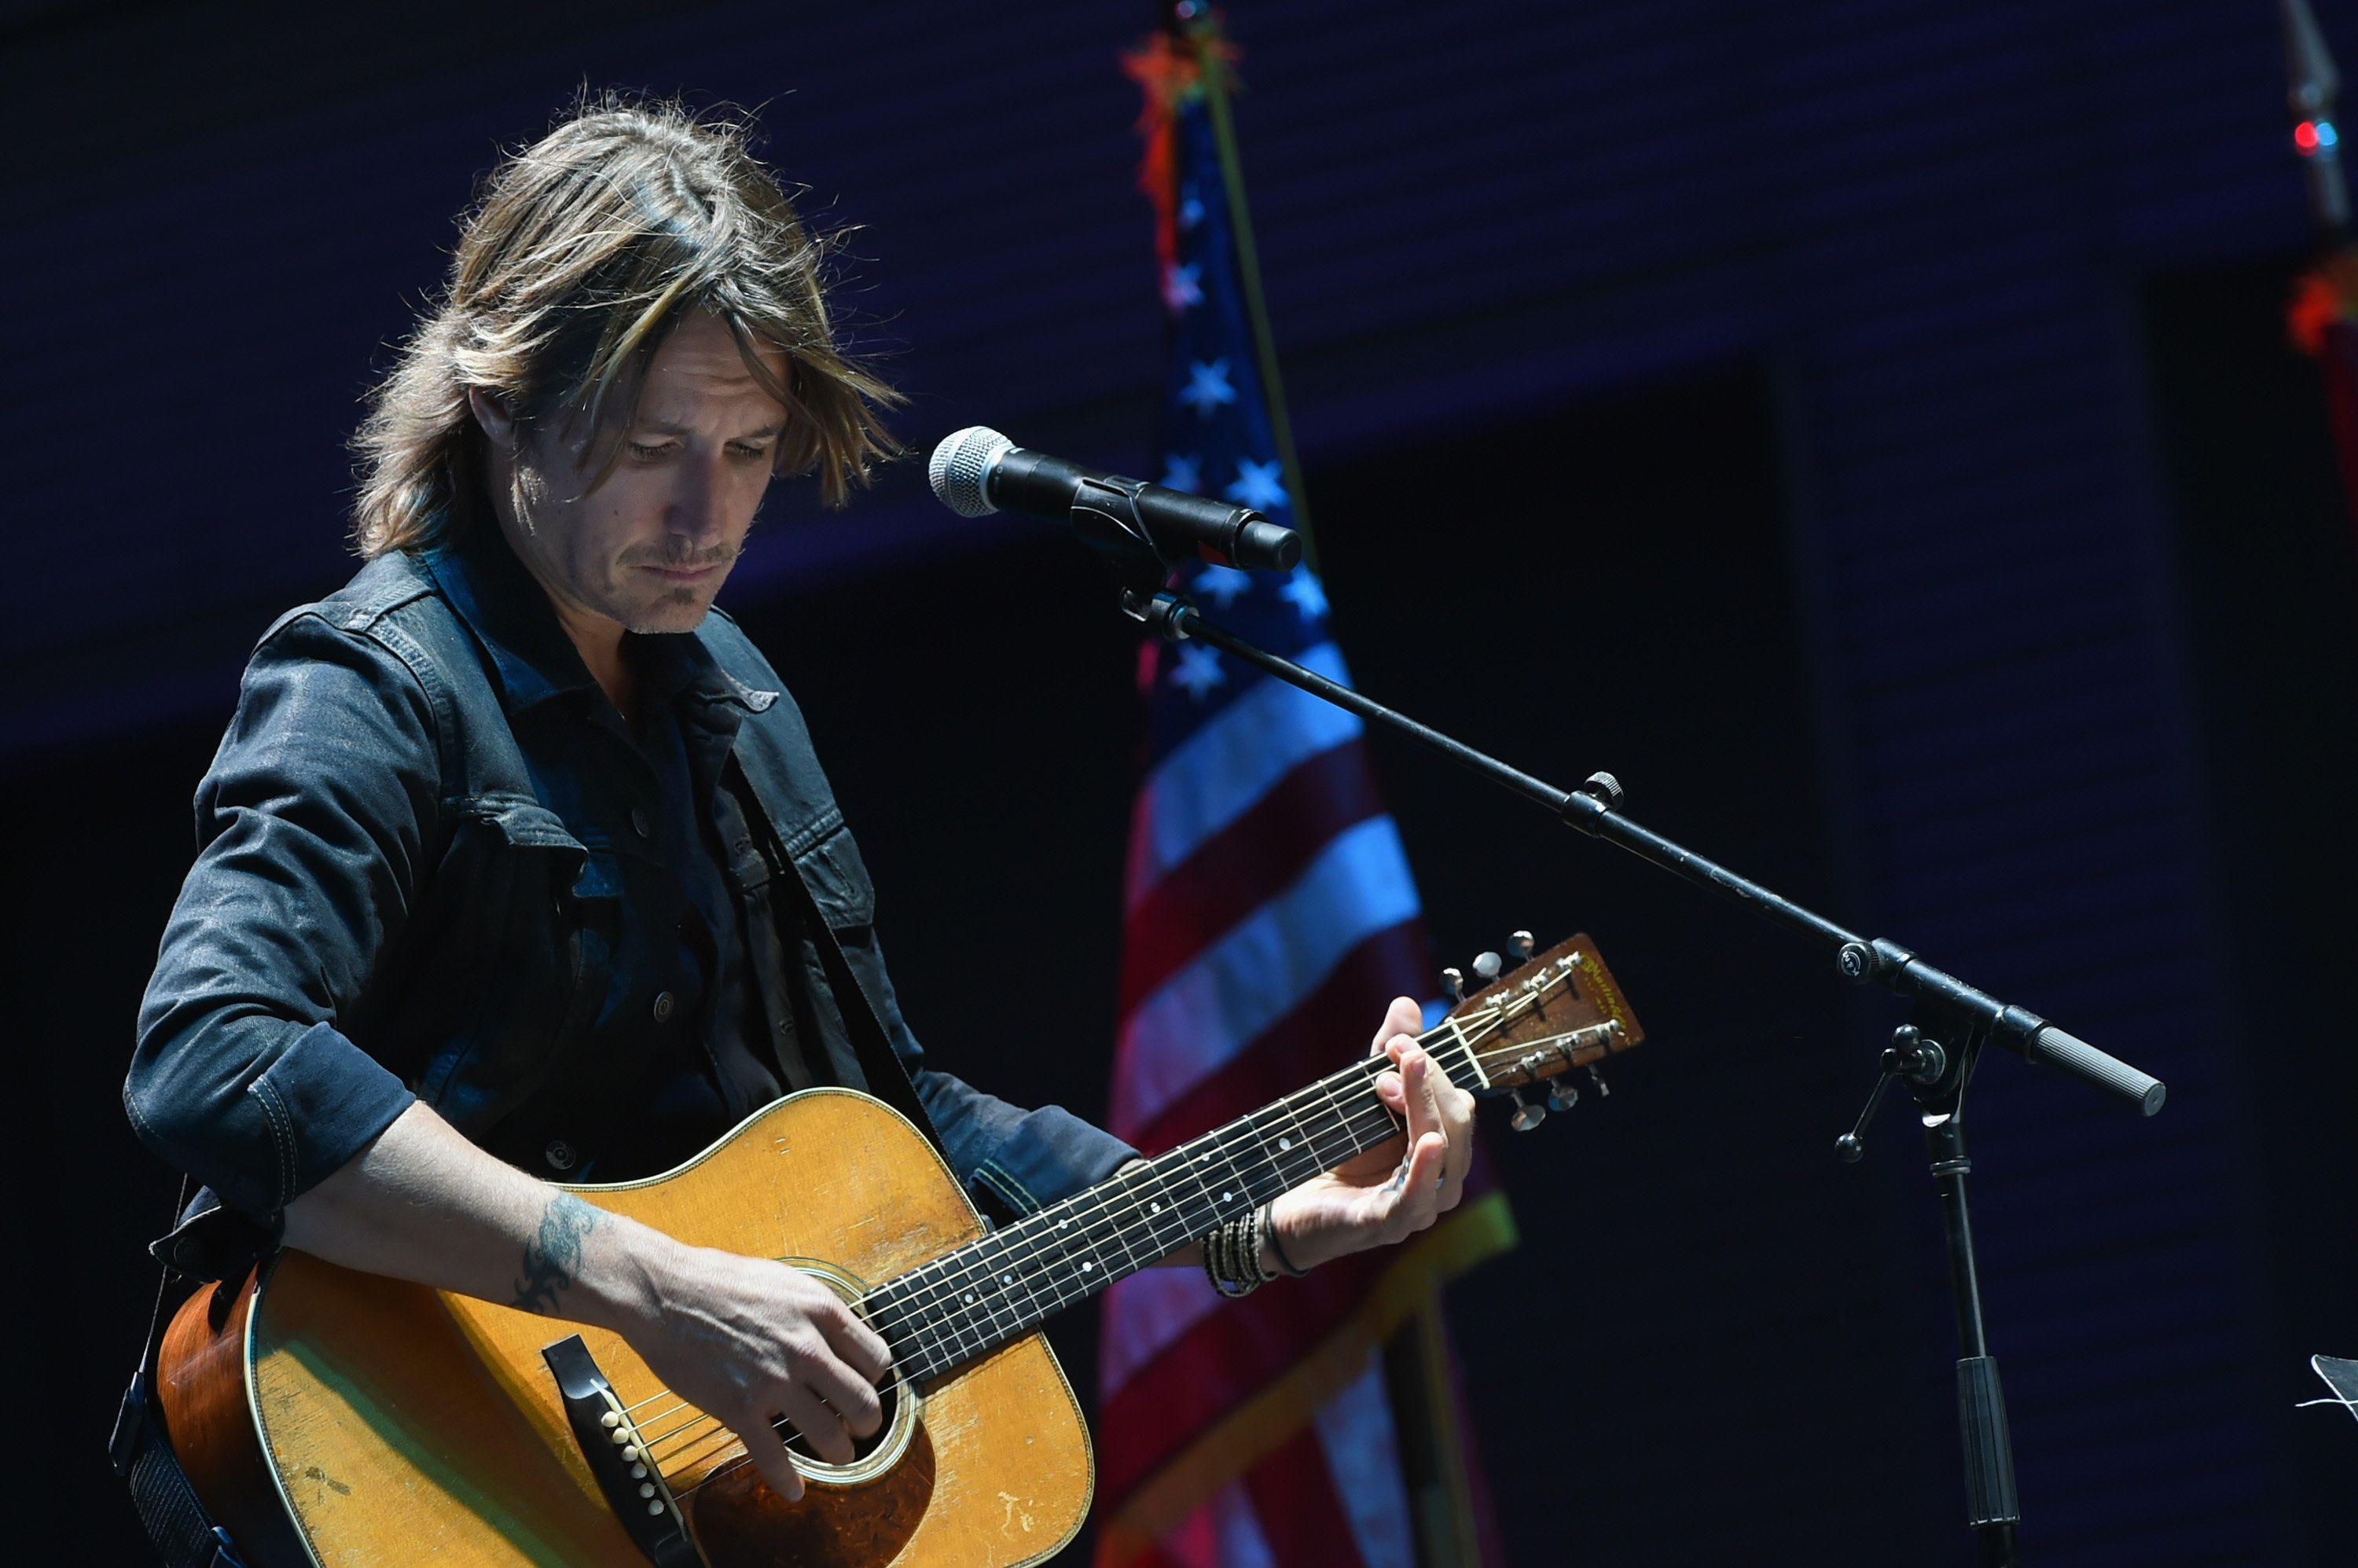 On Monday night, country music singer Keith Urban performed at a Nashville vigil for the victims of the Las Vegas shooting th